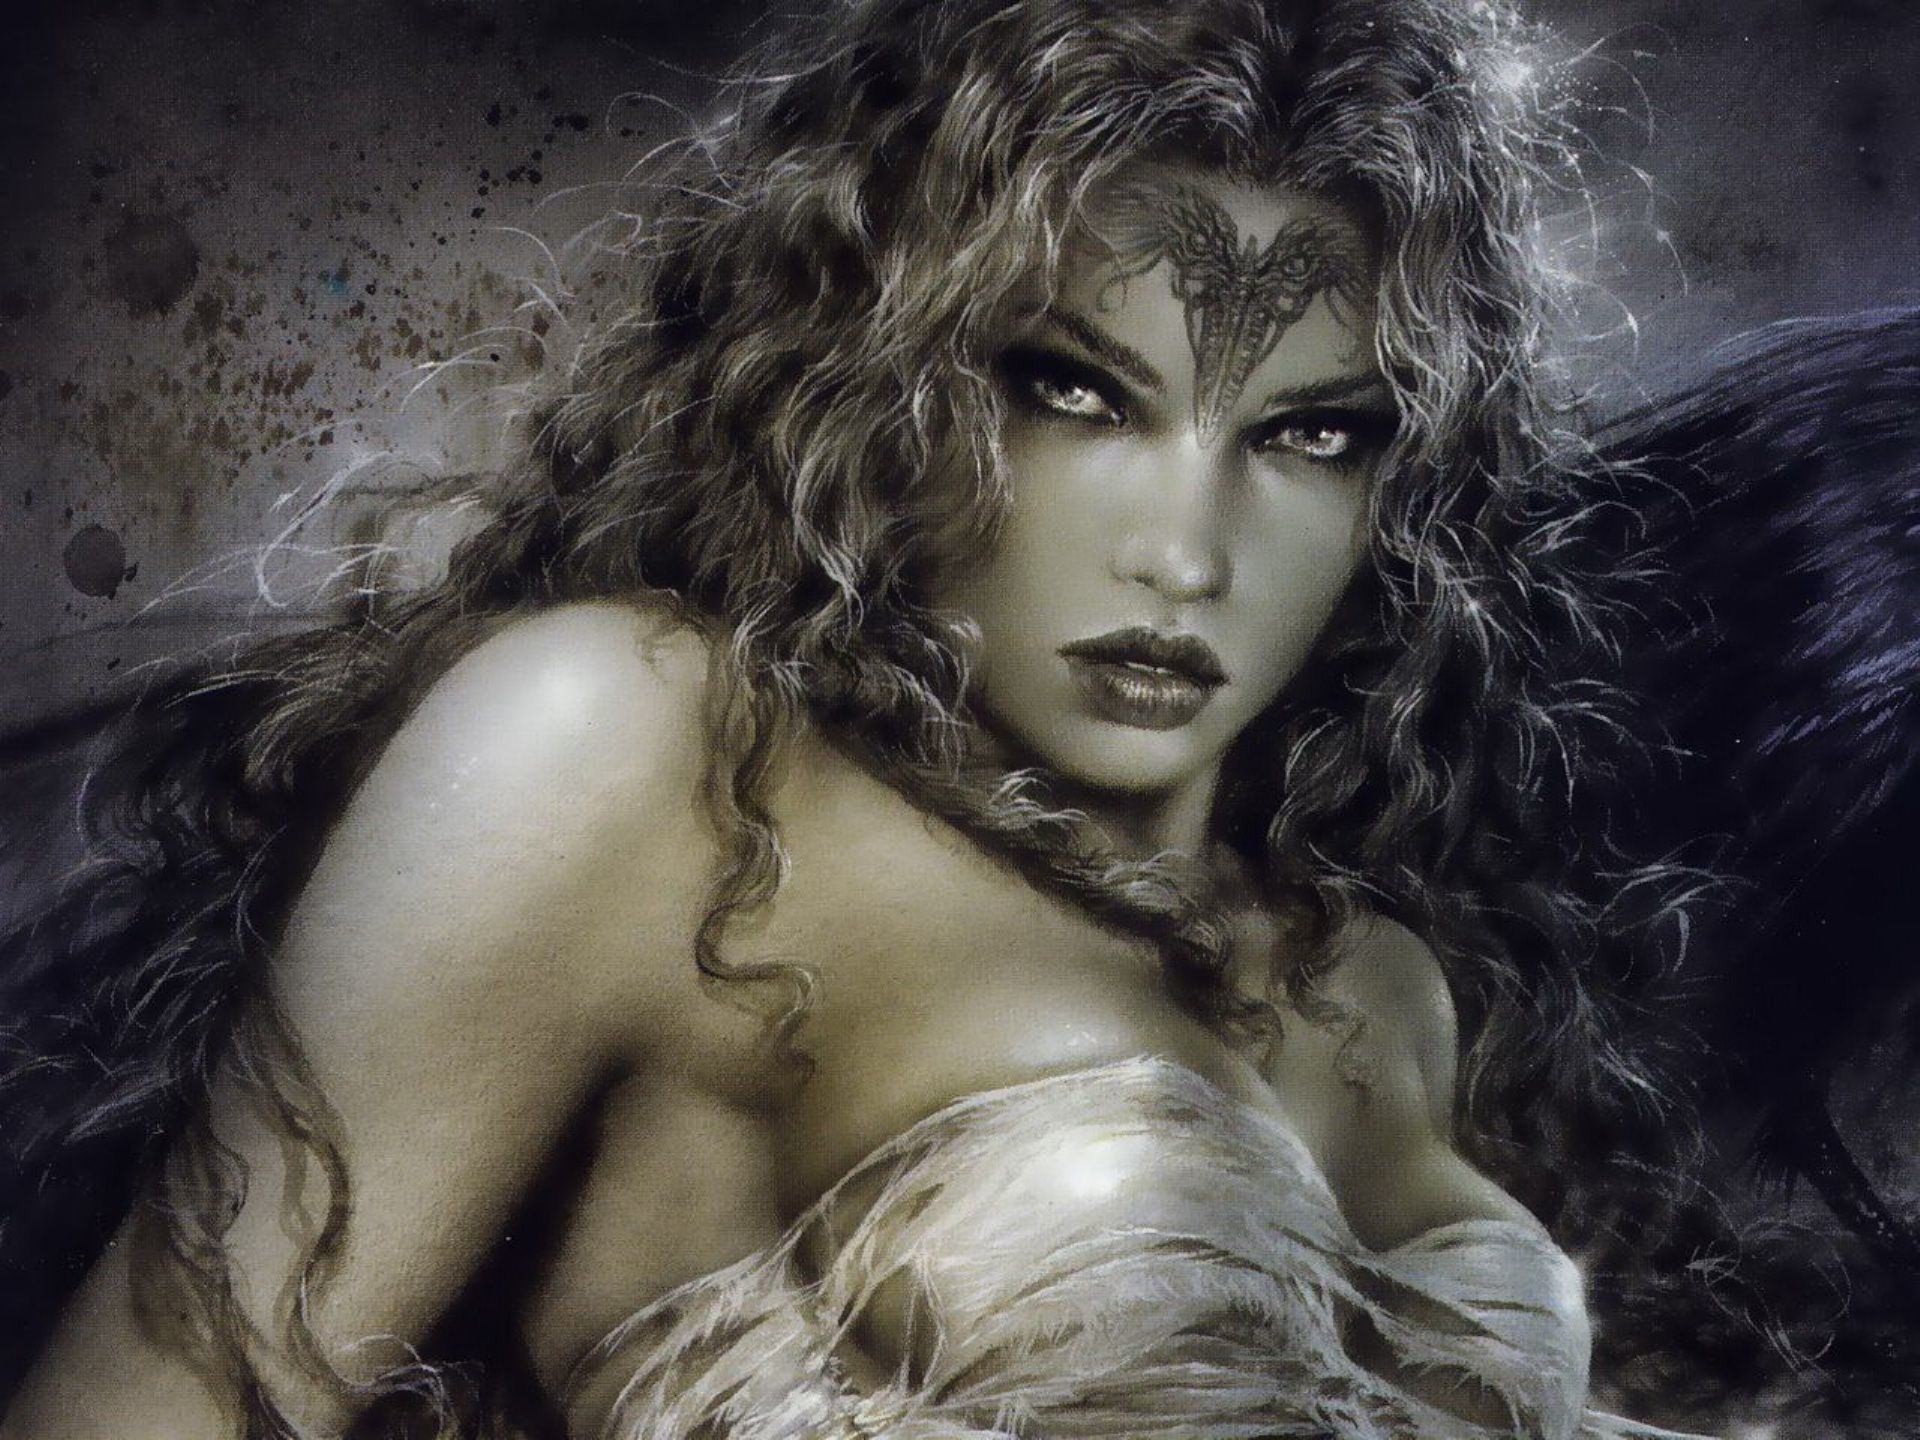 1920x1440 47 best Luis Royo (?) images on Pinterest | Luis royo, Drawings and Warrior  women